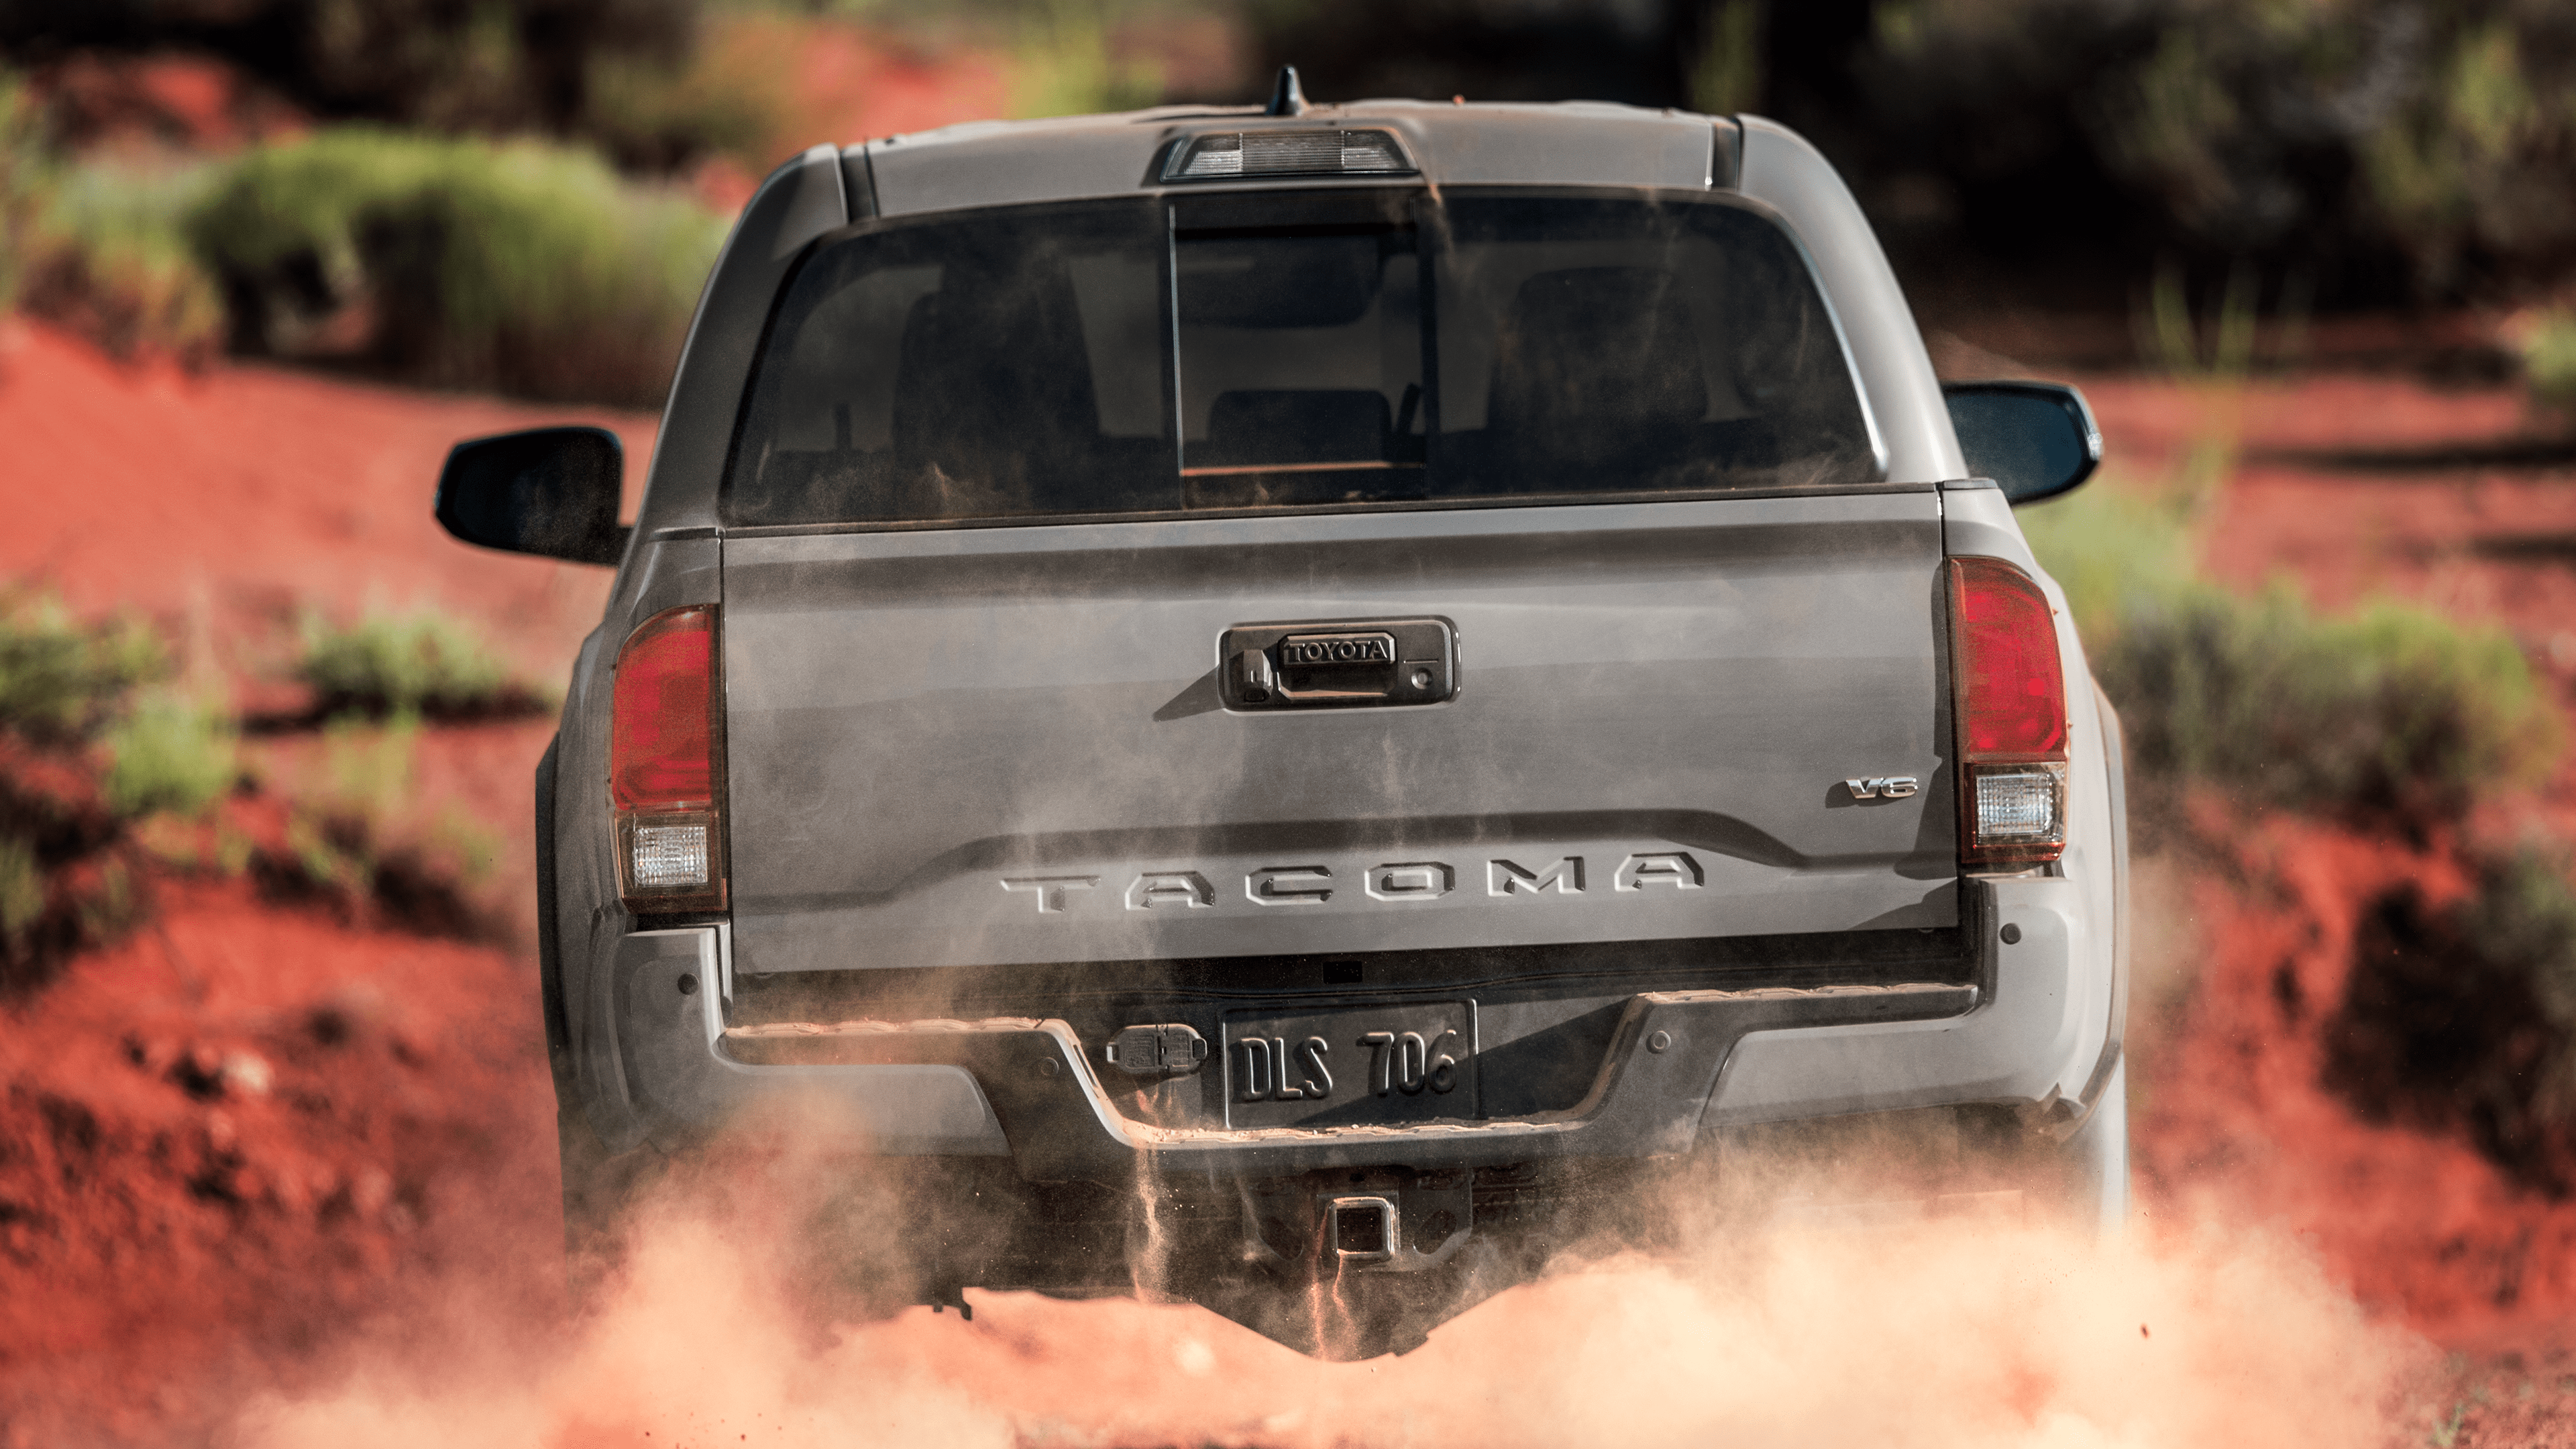 Toyota Tacoma 2019 Back , HD Wallpaper & Backgrounds